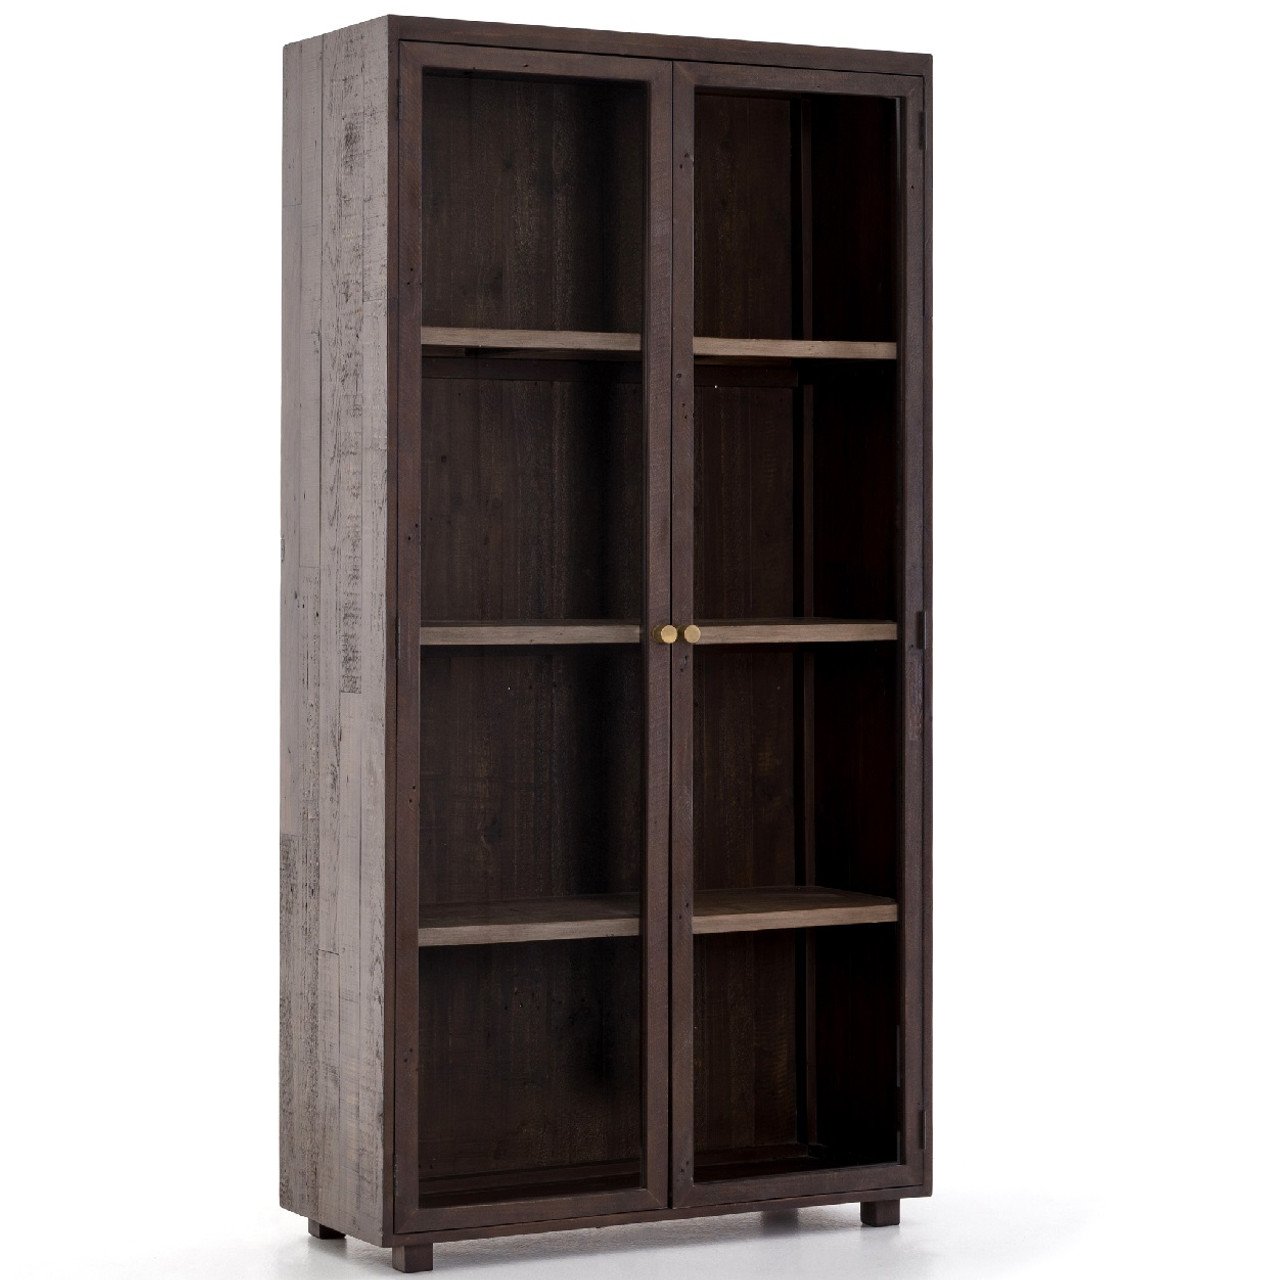 e class design mounted with display curio shop door world cabinet vape glass retail wall designs large ideas home l doors